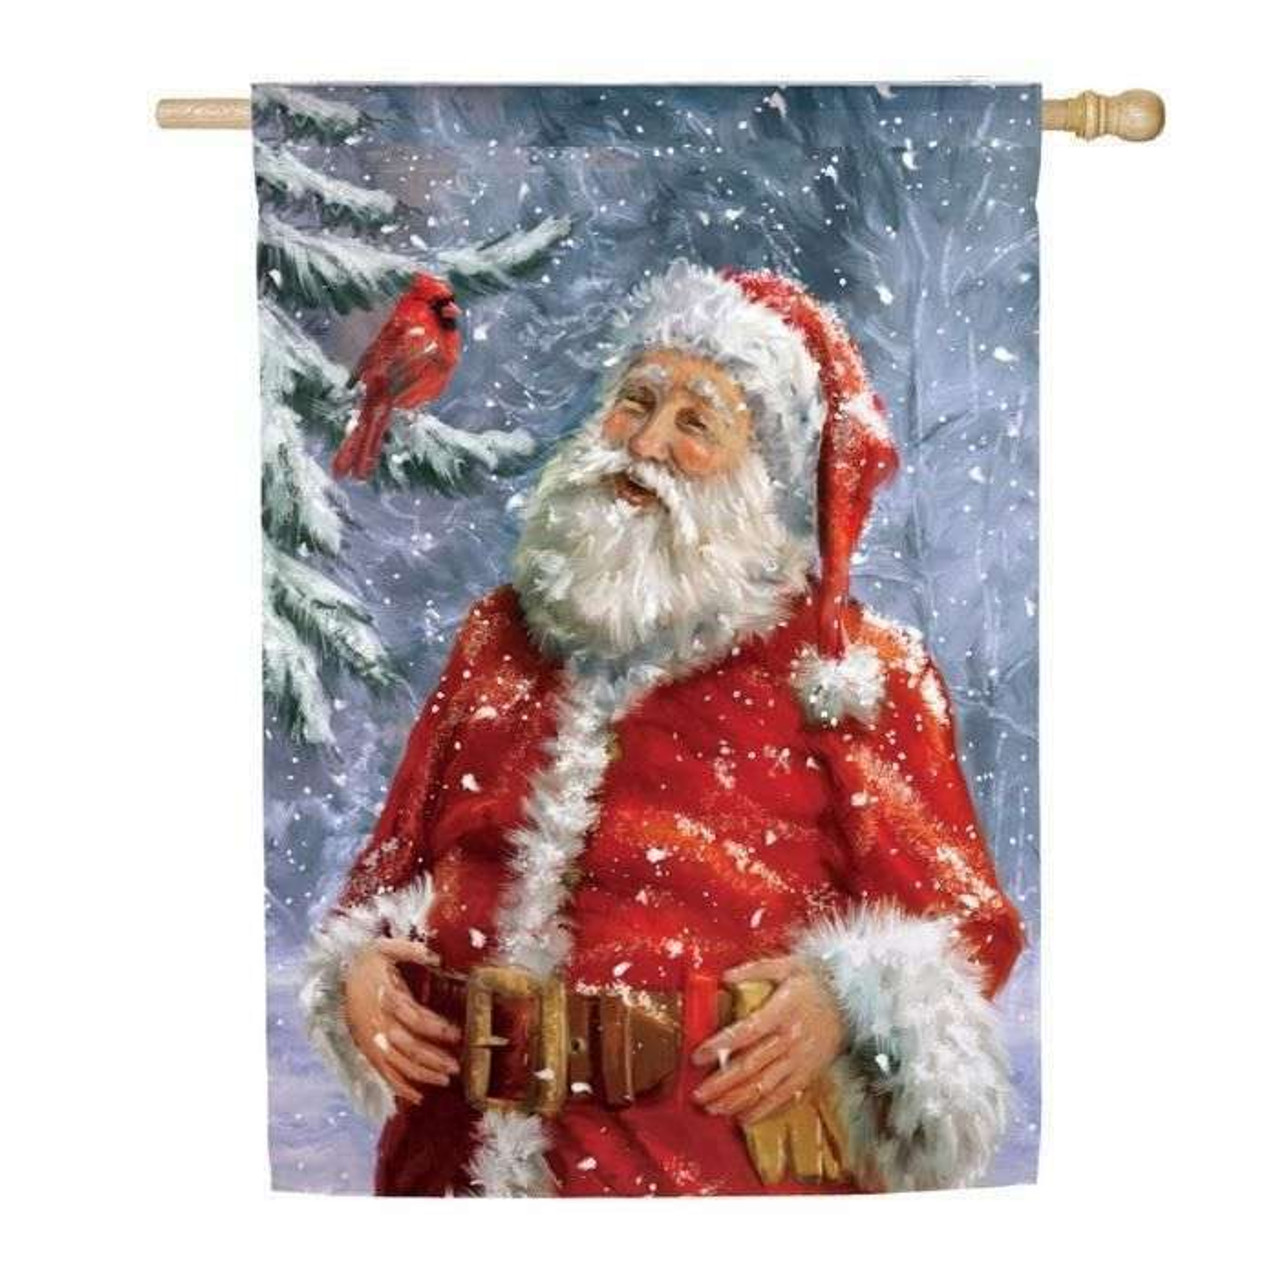 This decorative house flag depicts a classic  Santa Claus with a warm happy expression on his face, white bushy eyebrows, and mustached beard, rosy cheeks and lips with his hands anchored on his brown belt with brass buckle around his plump belly.  His suit is as red as the cardinal perched on a snow-covered pine who he appears to be sharing a moment with.  He has fluffy white cuffs and trim on his suit and had. The backdrop is a snowy winter wonderland with branchy, leafless trees in blue-gray hues and fluttering white snow.